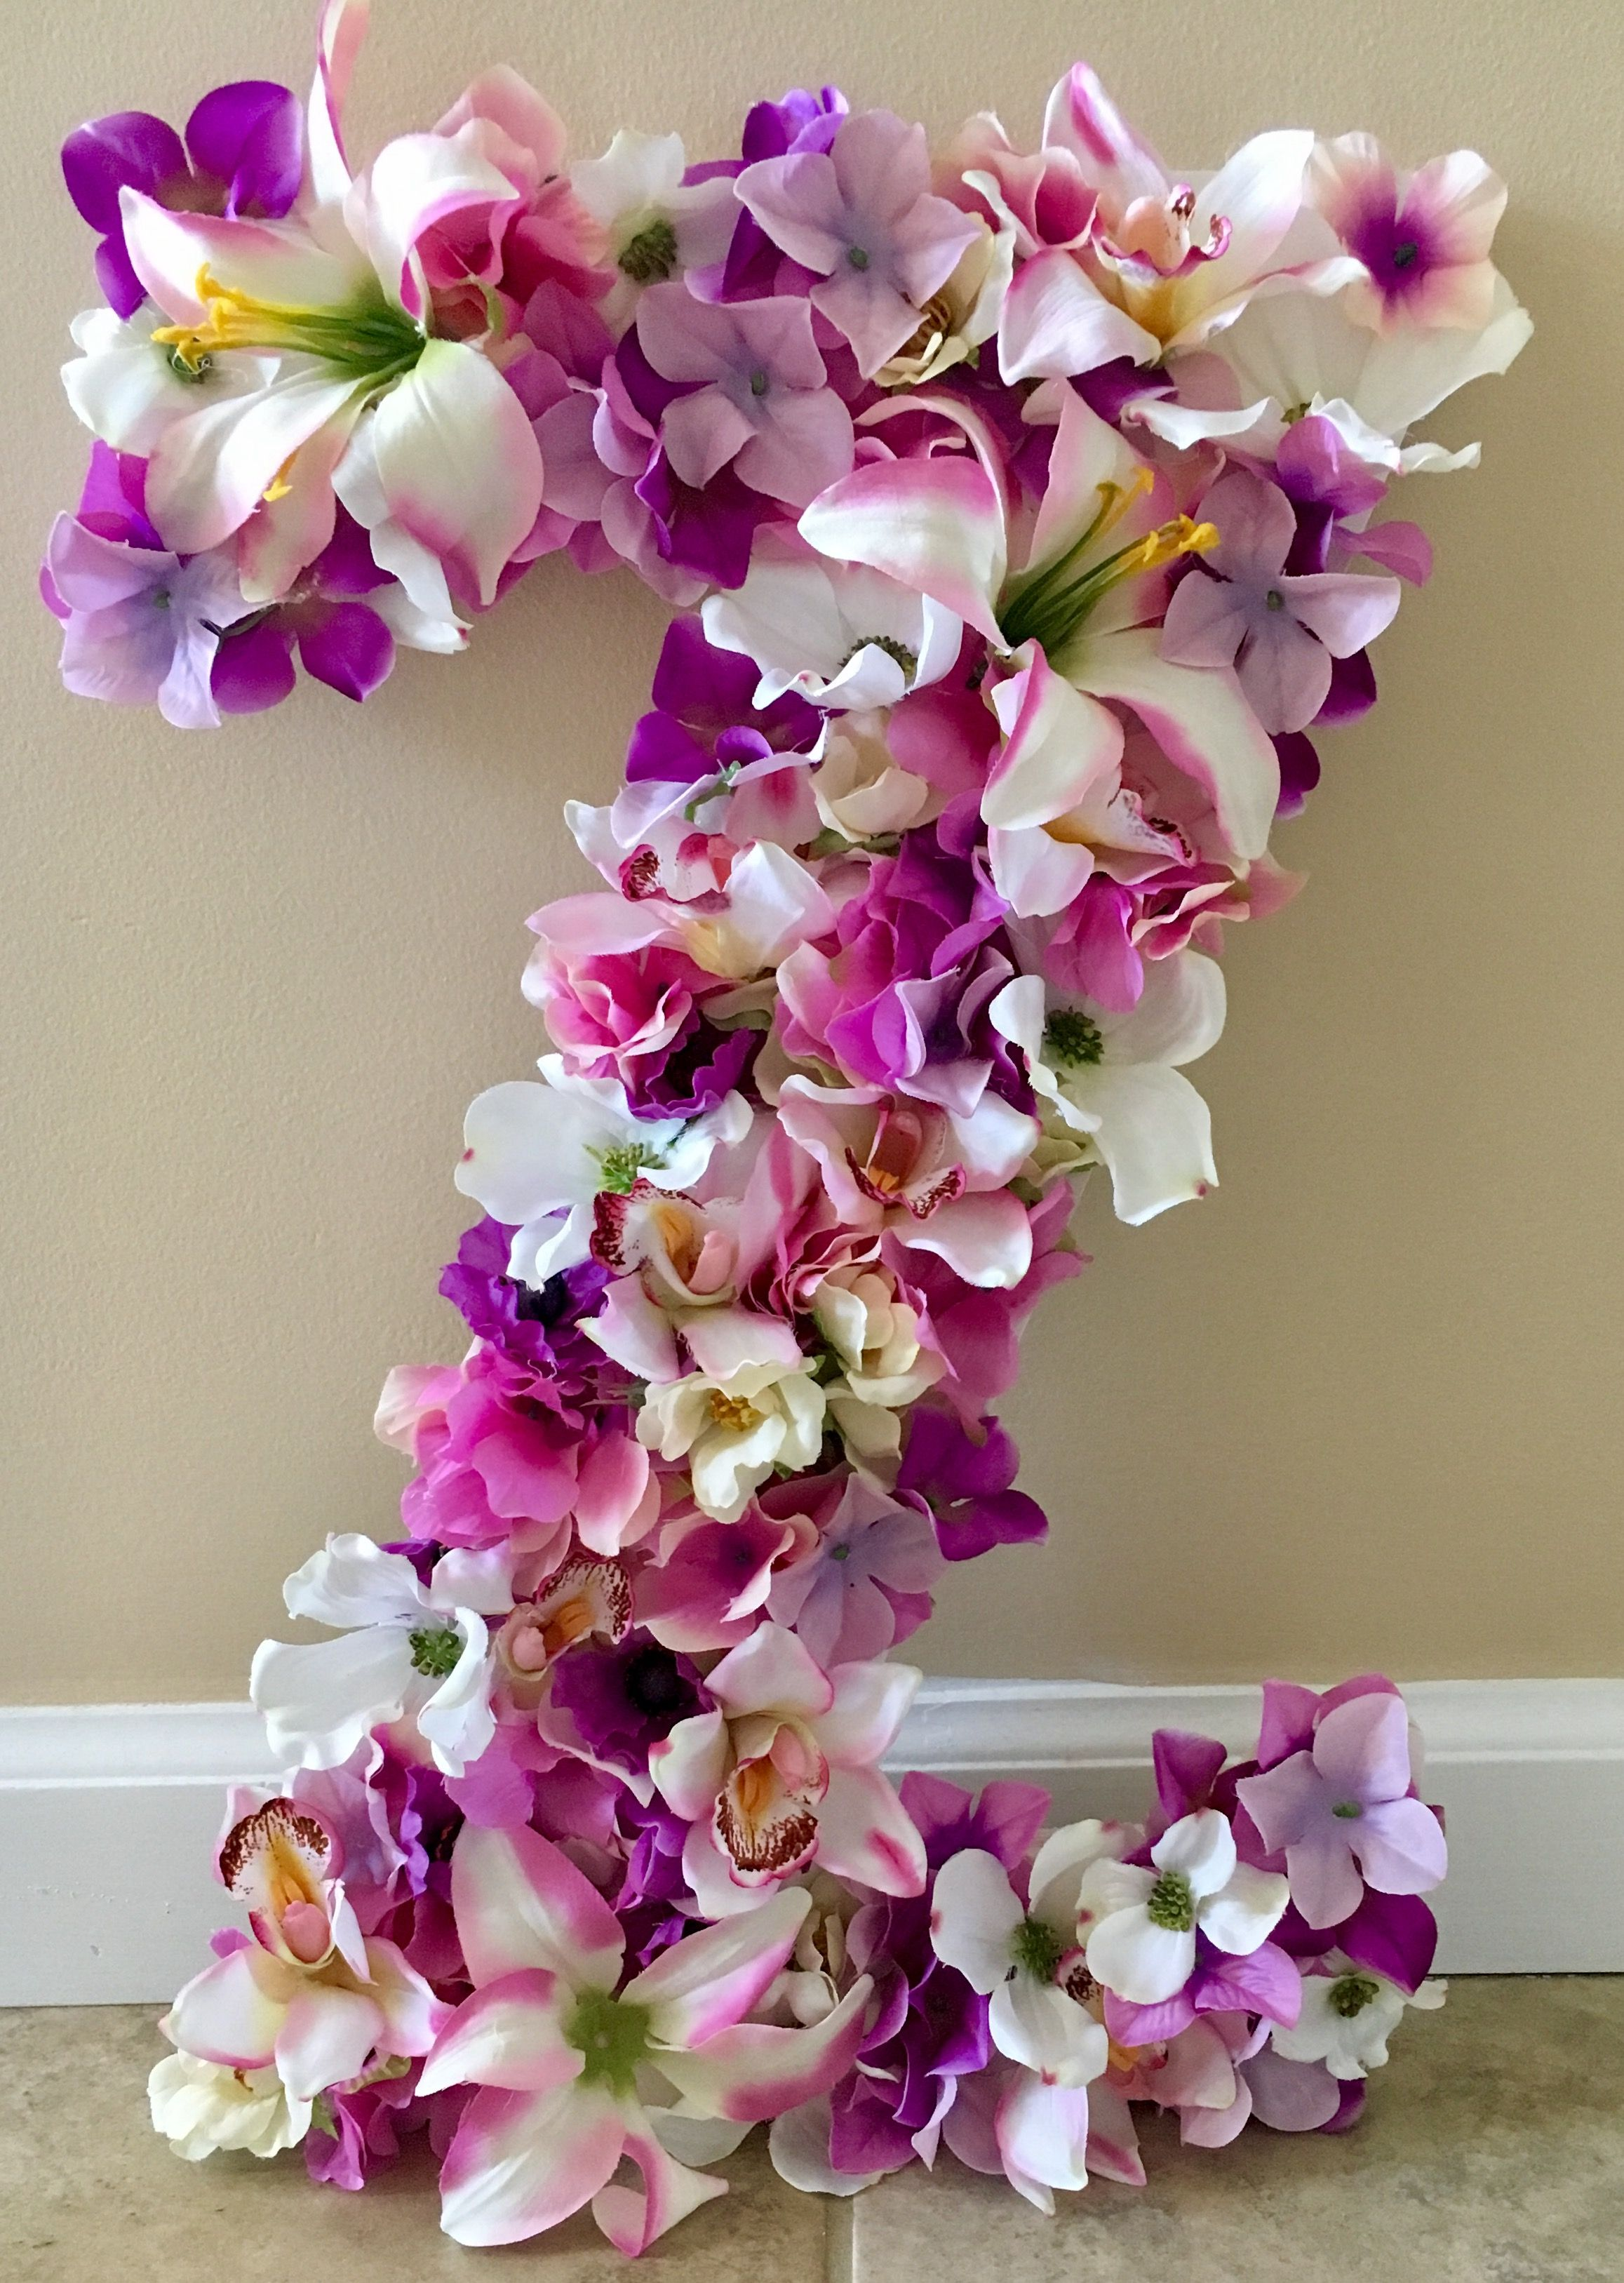 Wooden 18 Inch Letter Z From Hobby Lobby Hot Glued Silk Flowers For